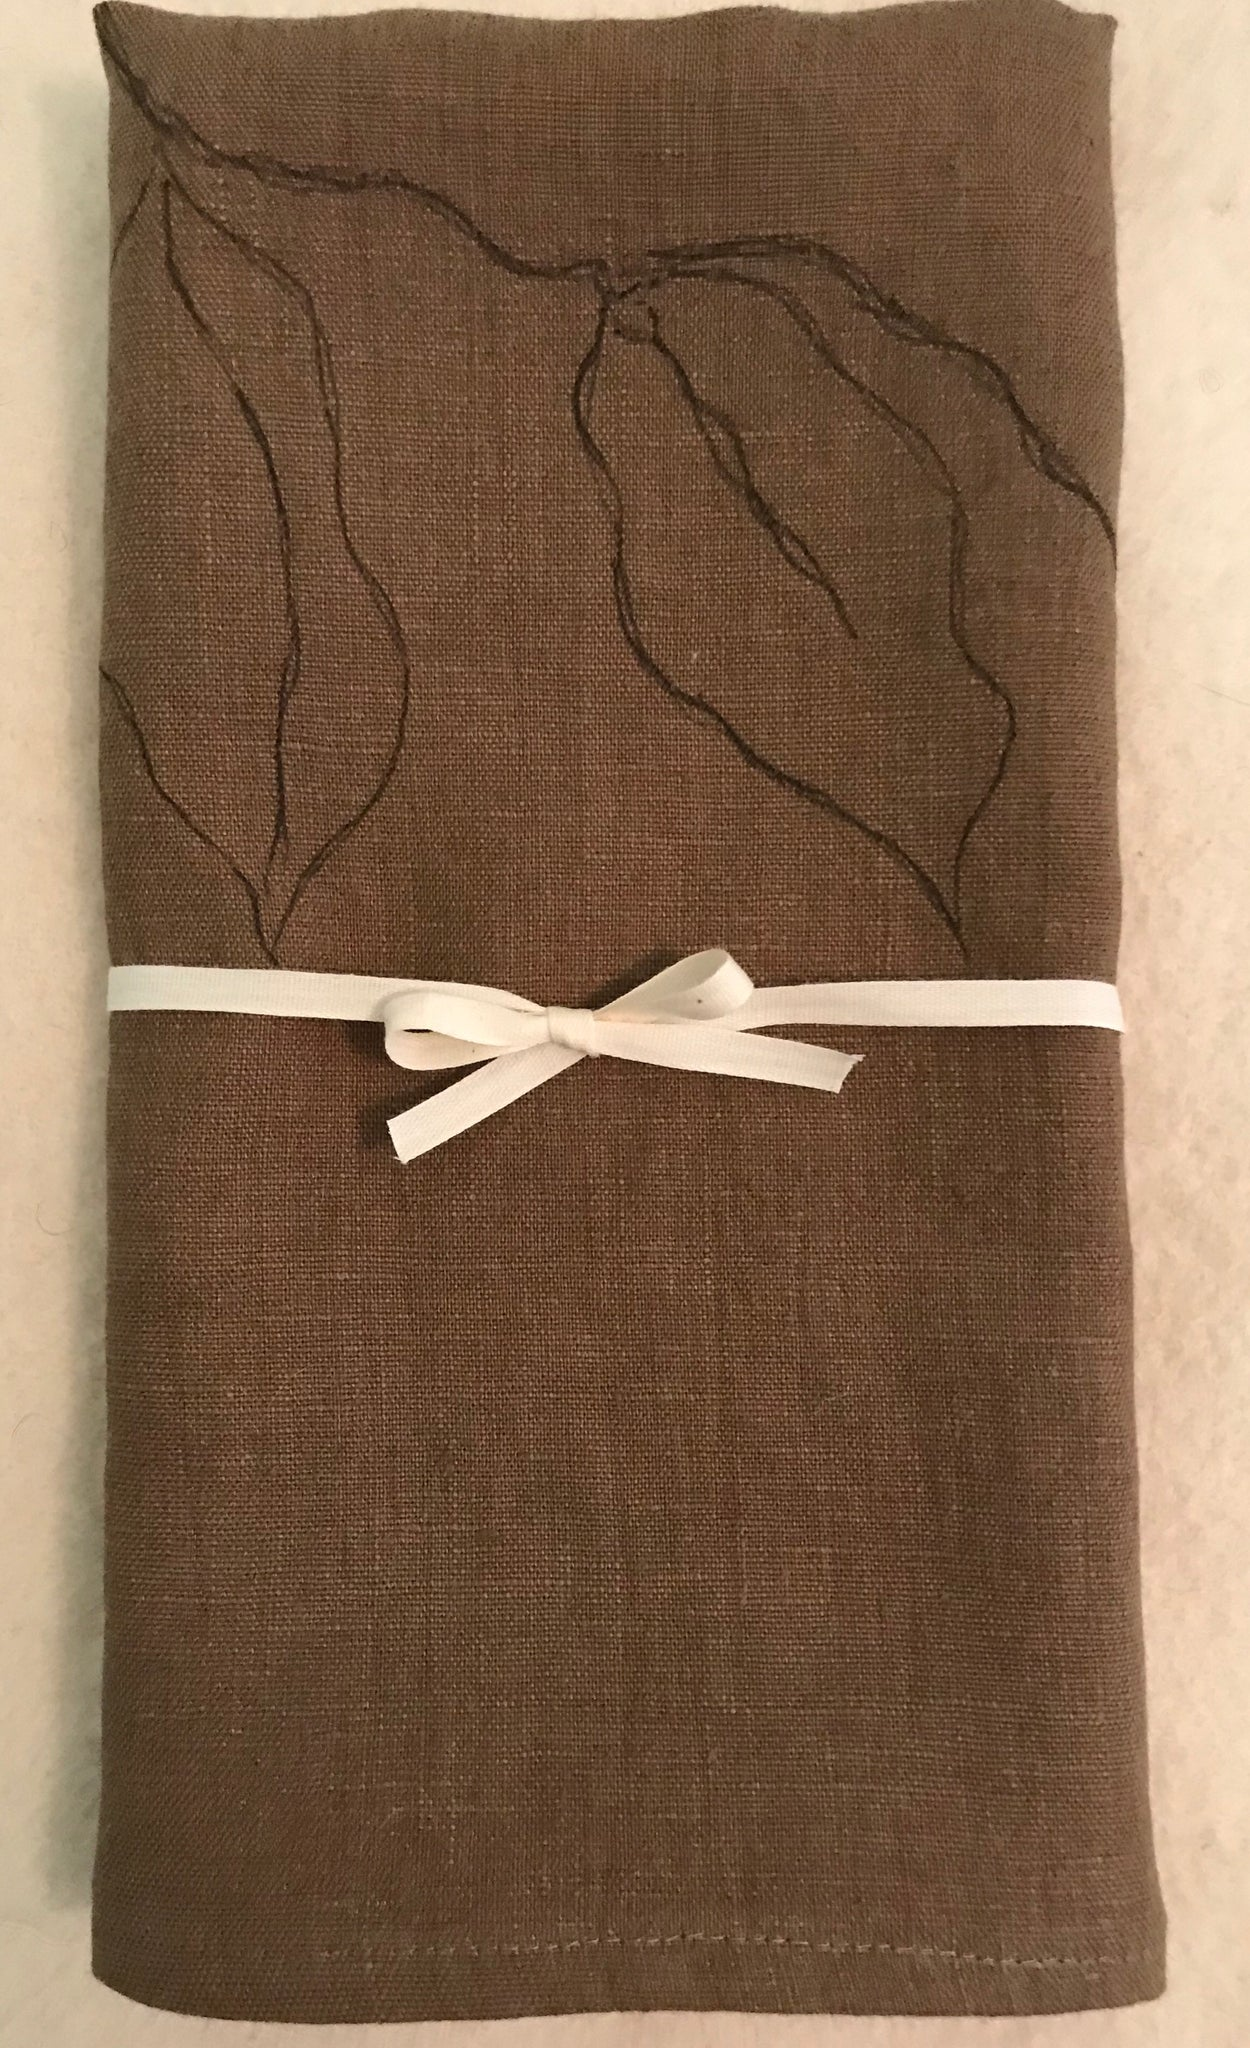 Extra long Vintage Linen Towels - set of 2